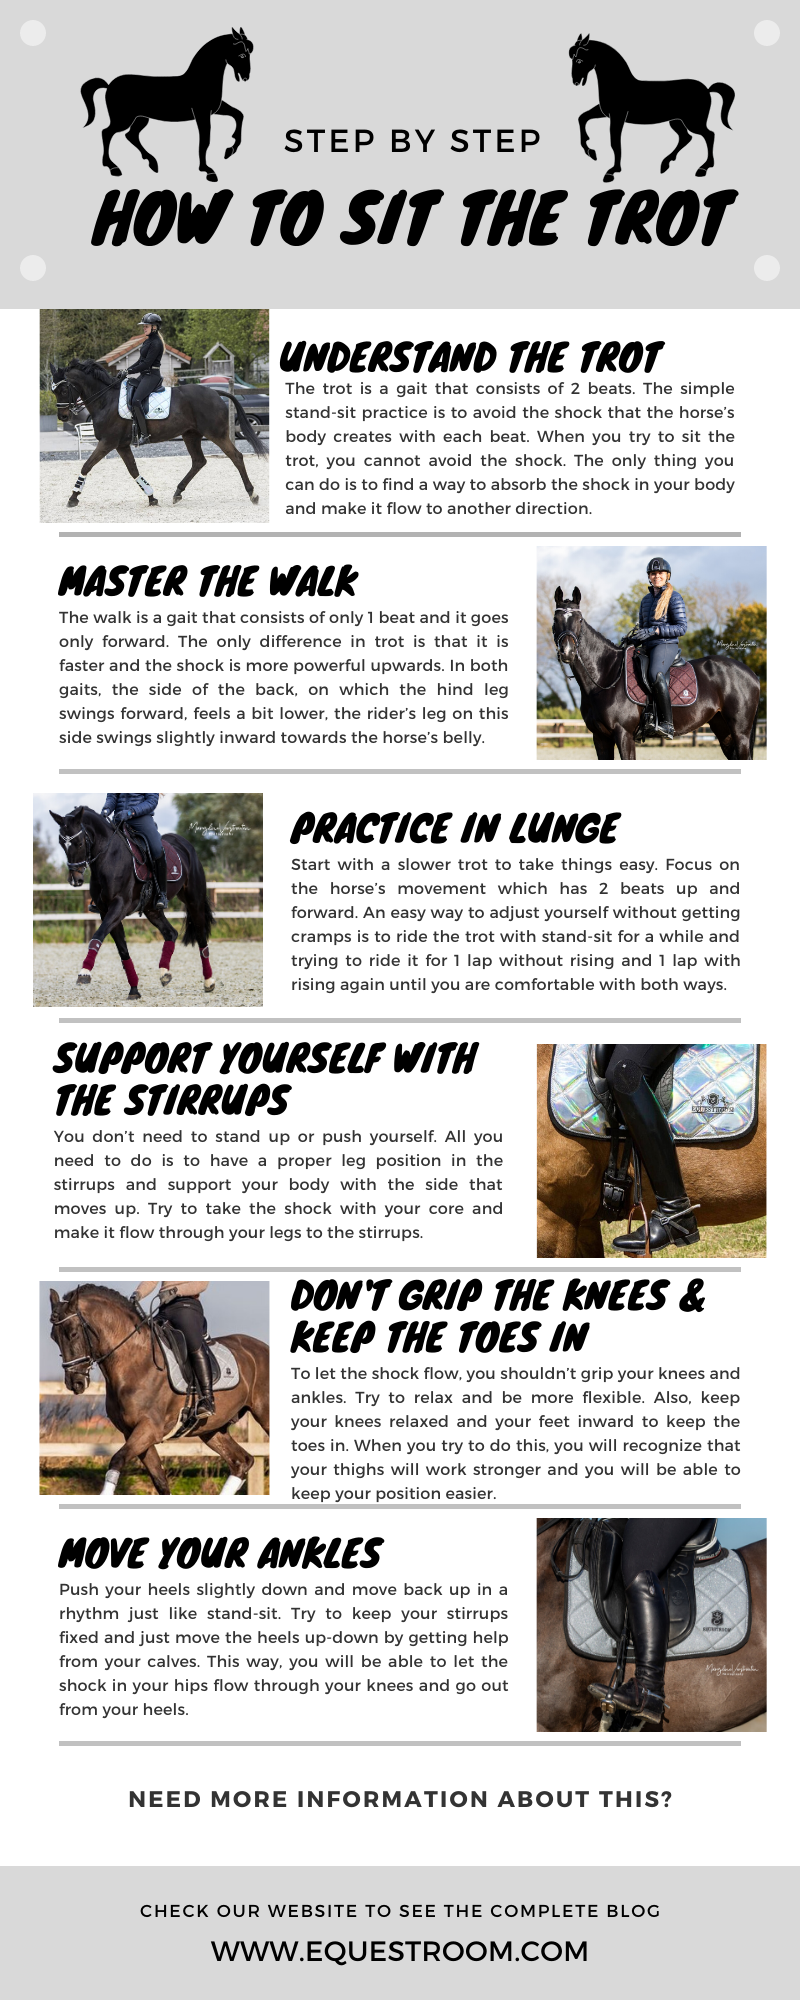 How To Sit the Trot by Equestroom Infographics